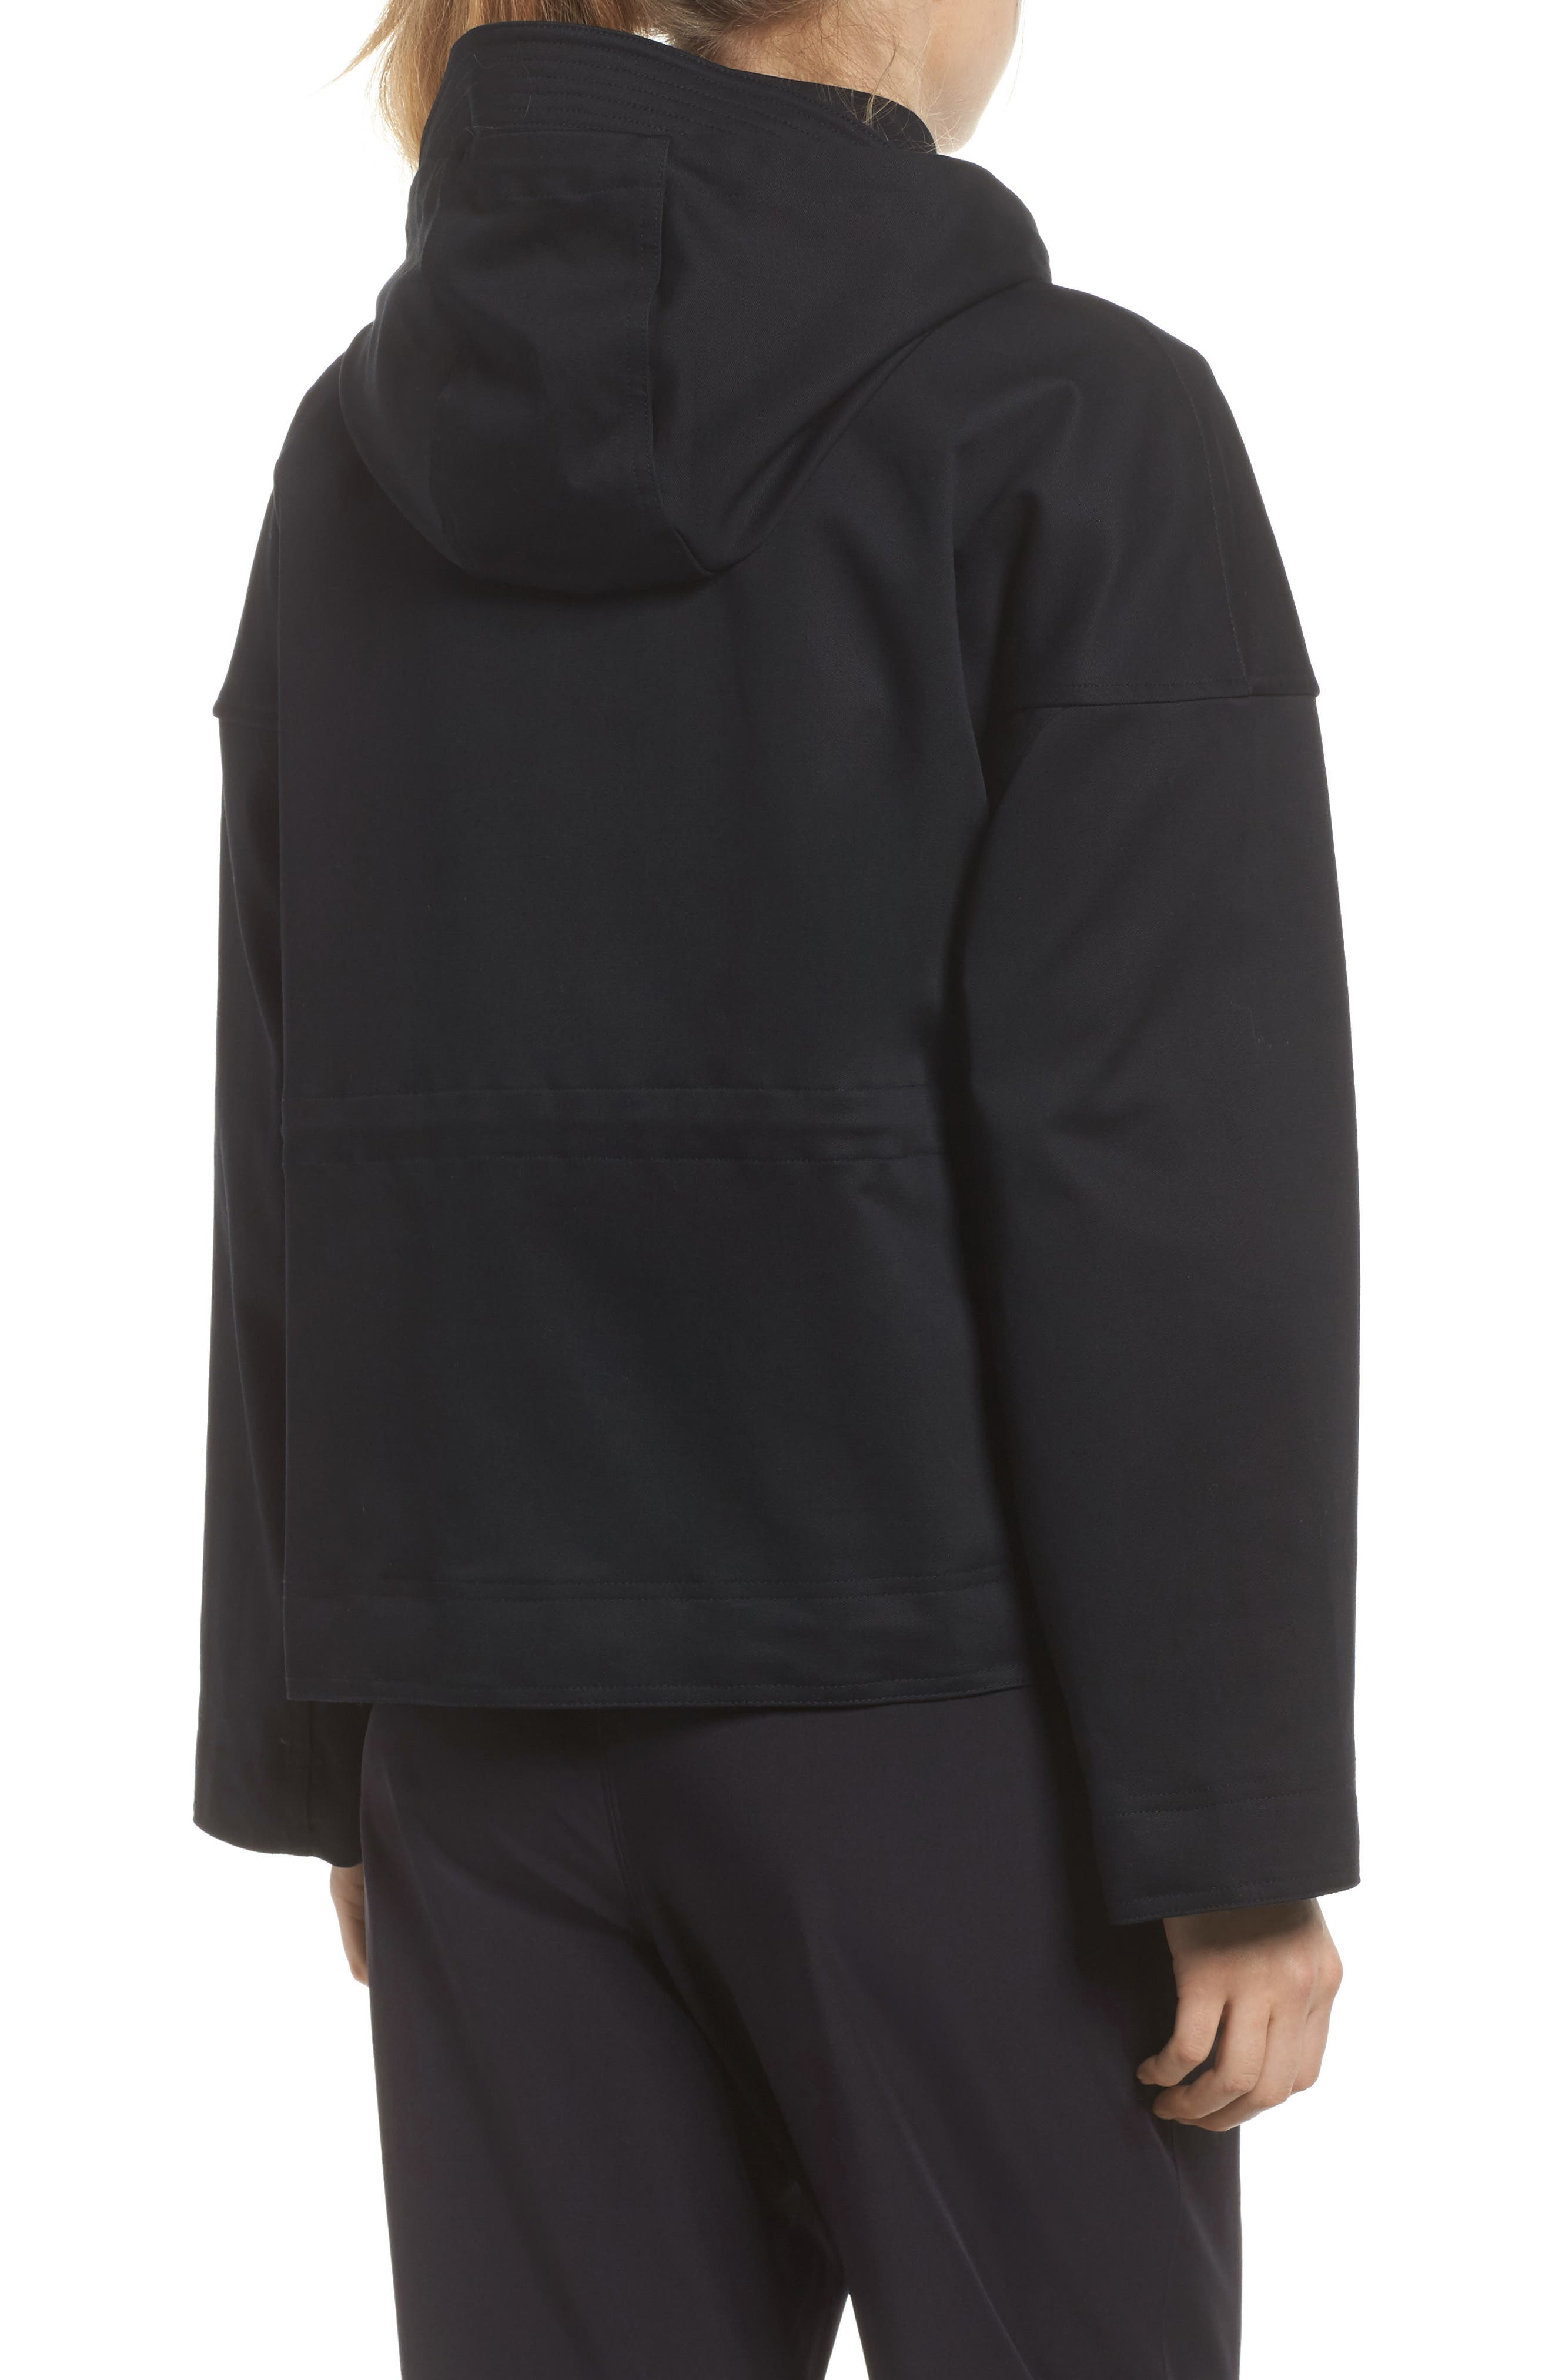 NikeLab Collection Women's Tactical Jacket,                             Alternate thumbnail 3, color,